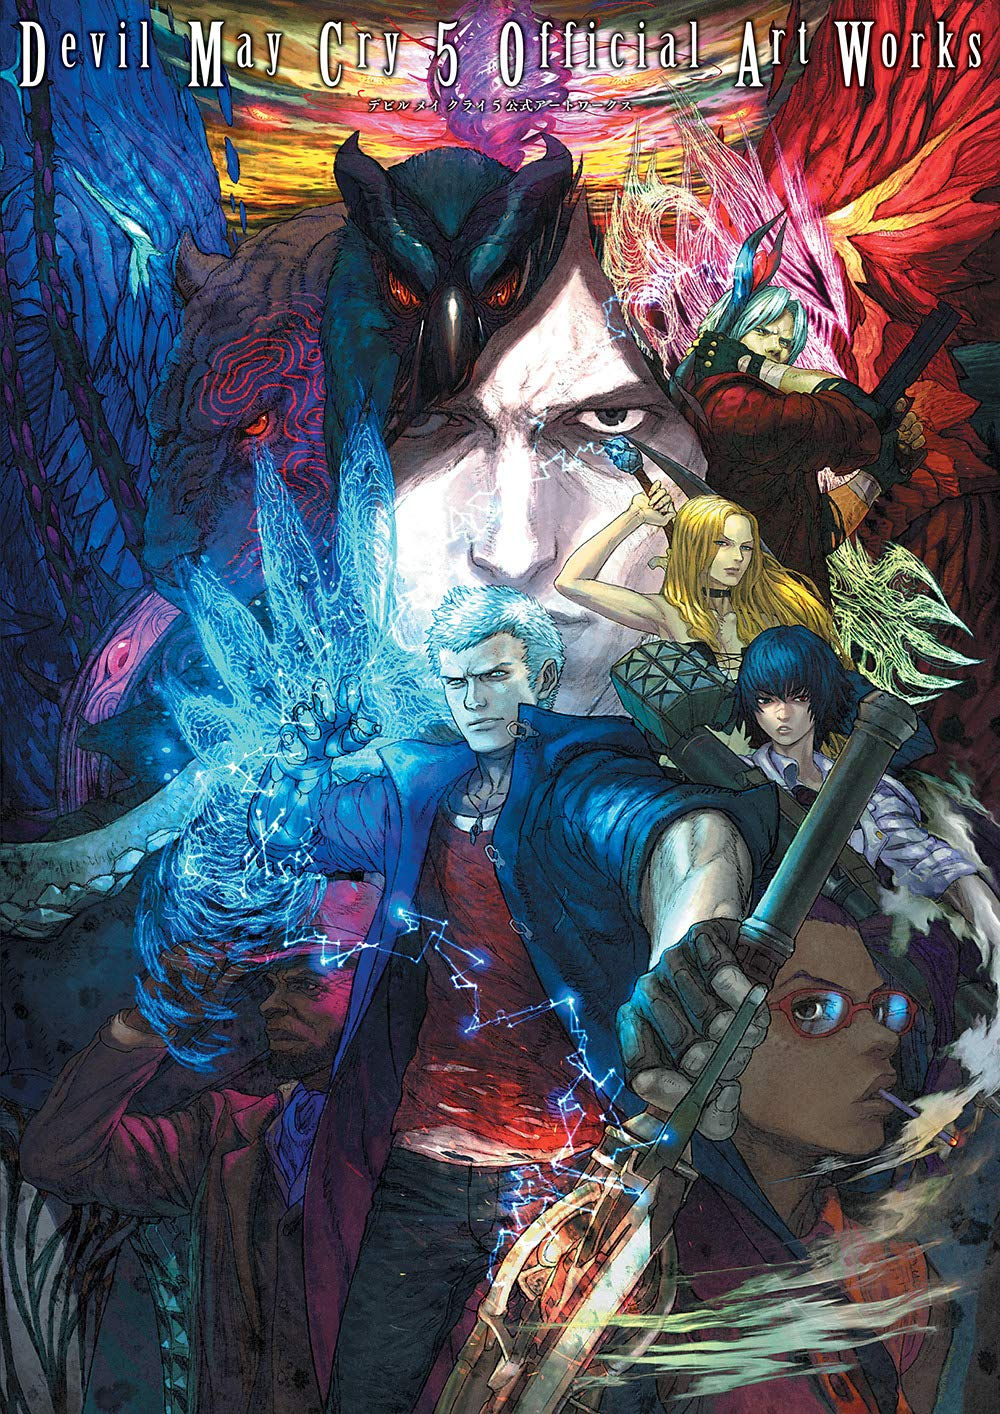 Devil May Cry 5 Official Art Works Japanese Edition 電撃ゲーム